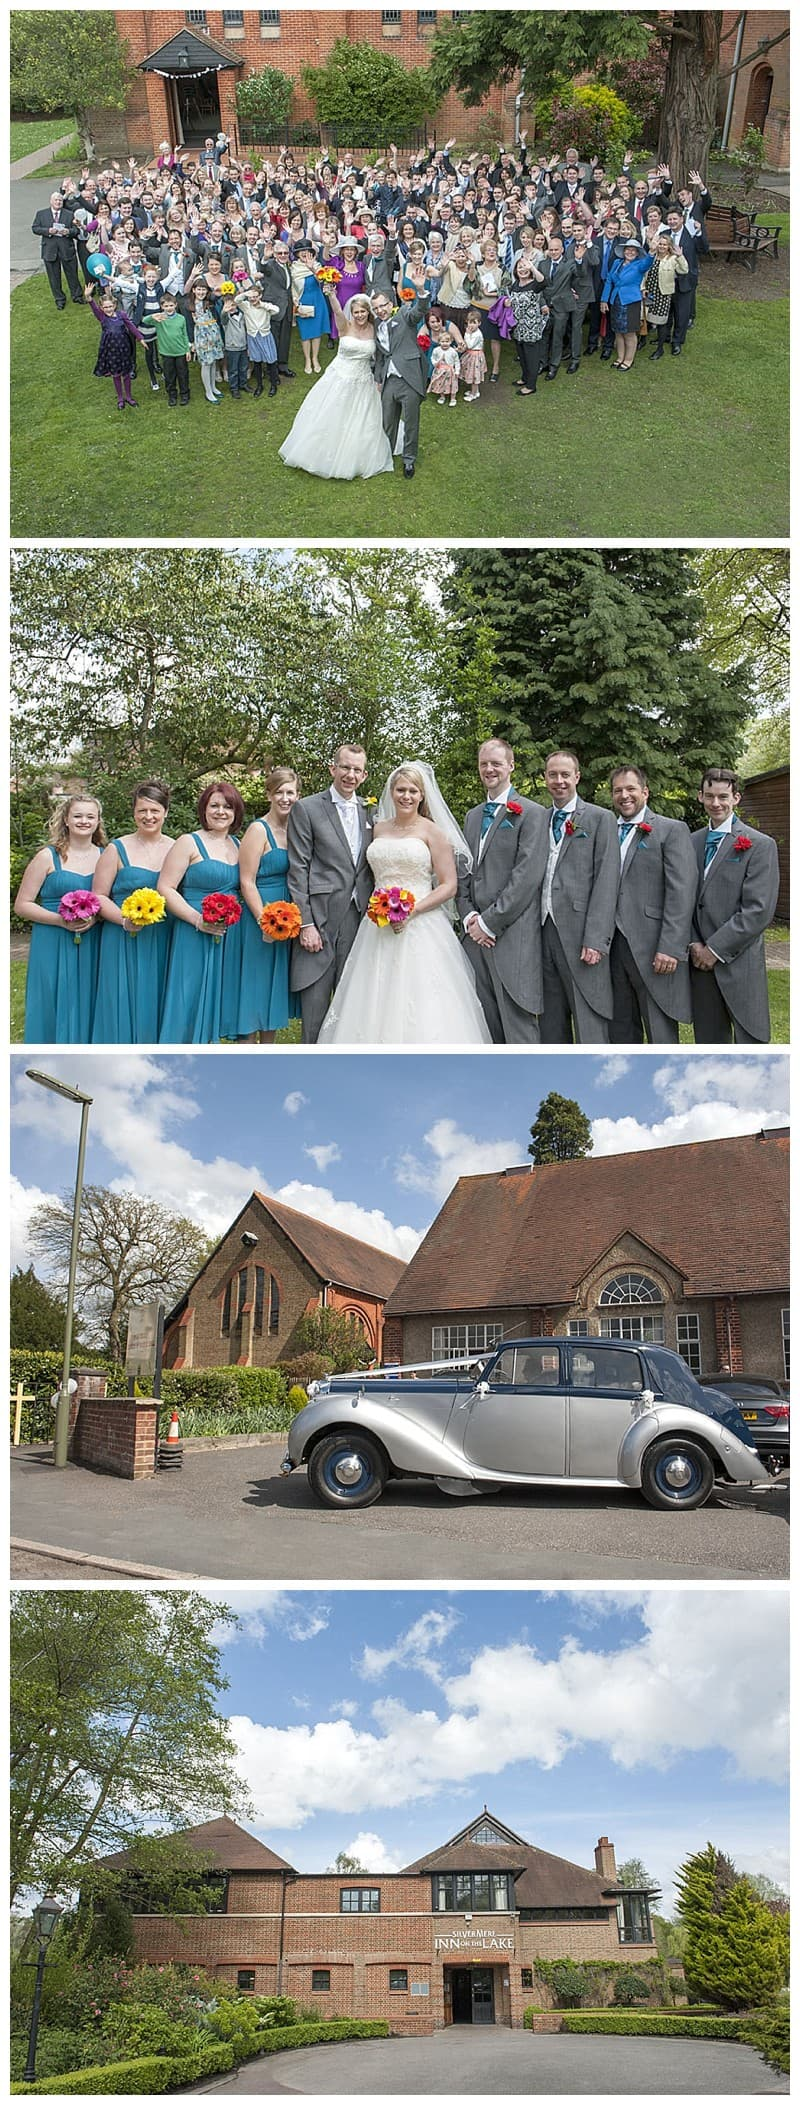 Steve & Hannah, Silvermere Golf Course Wedding, Benjamin Wetherall Photography0026